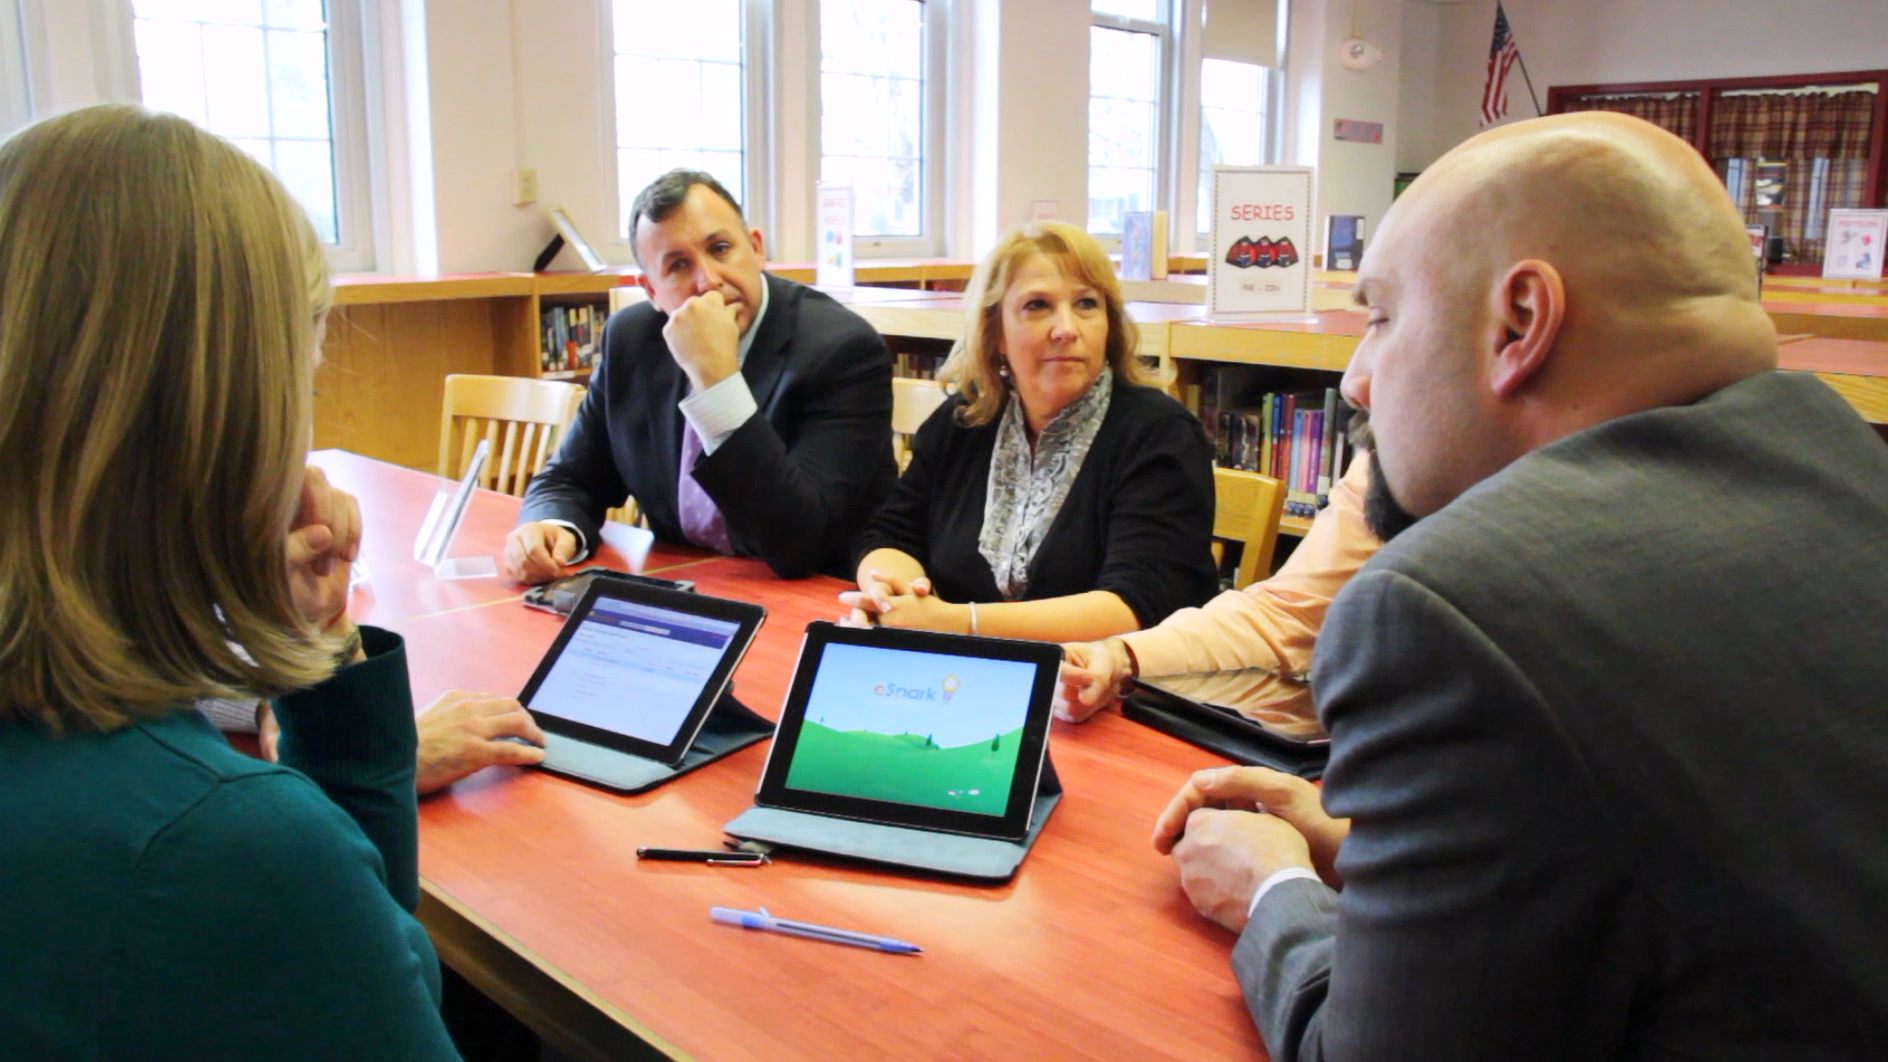 Mineola_Teachers_and_Admins_with_iPads.png